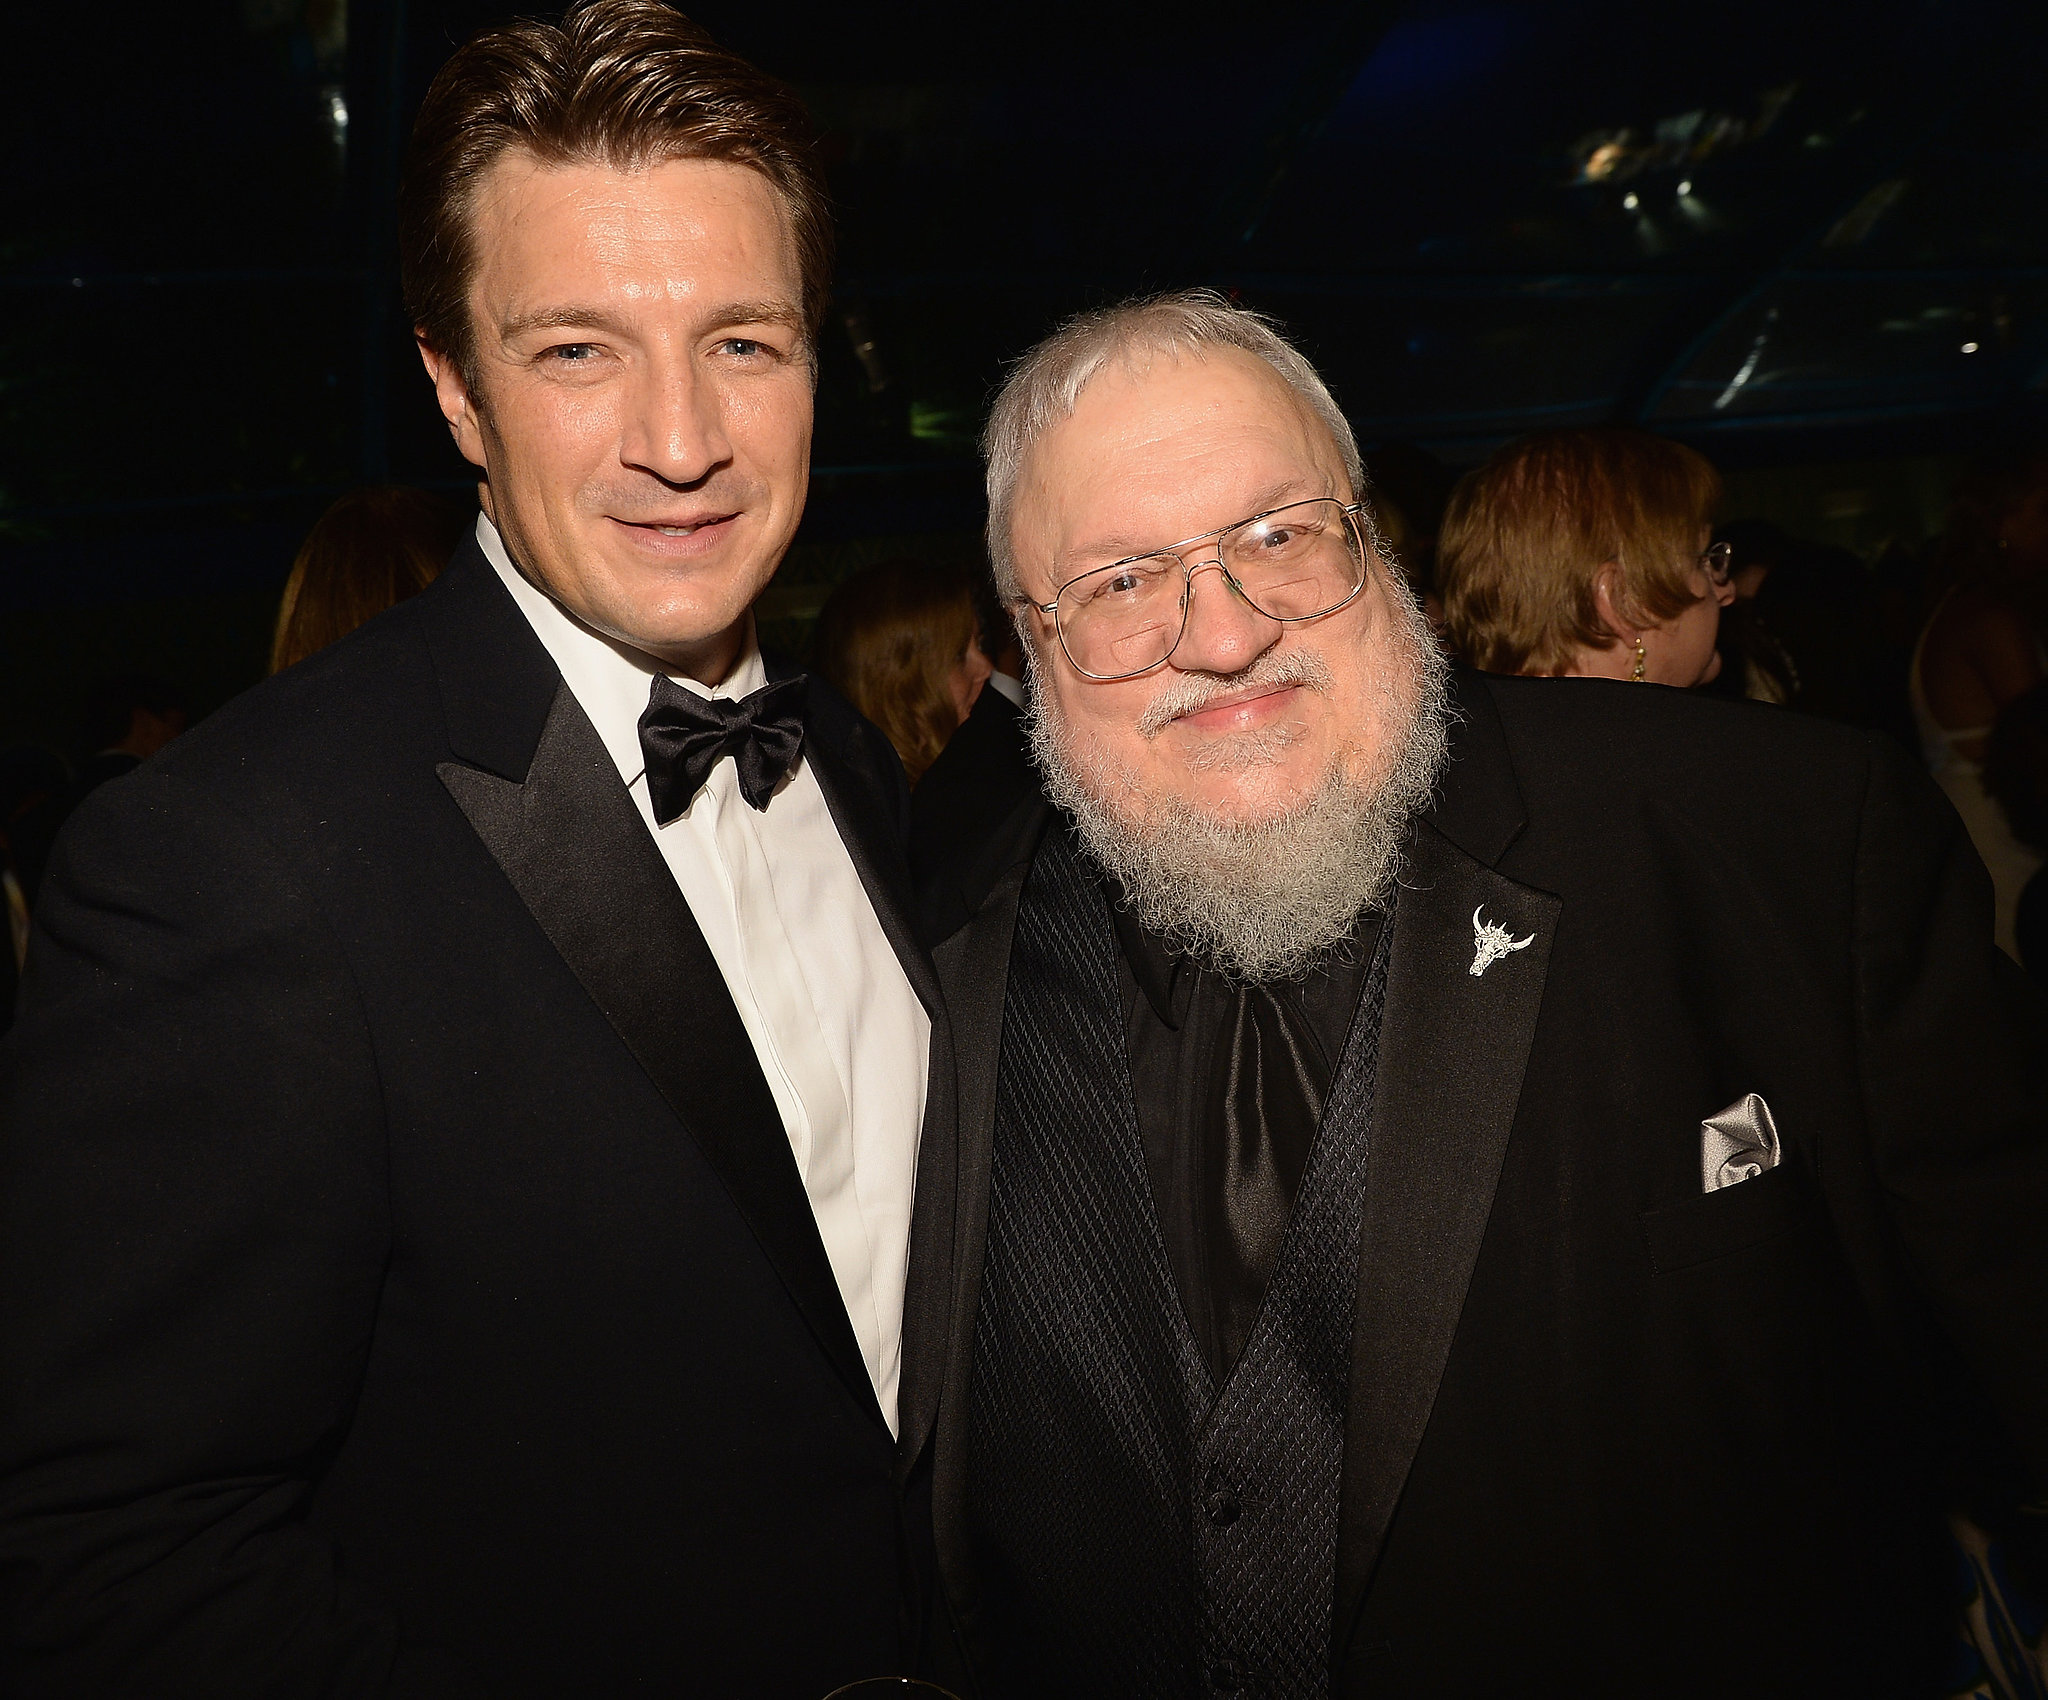 Nathan Fillion and George R. R. Martin shared a moment at HBO's afterparty.